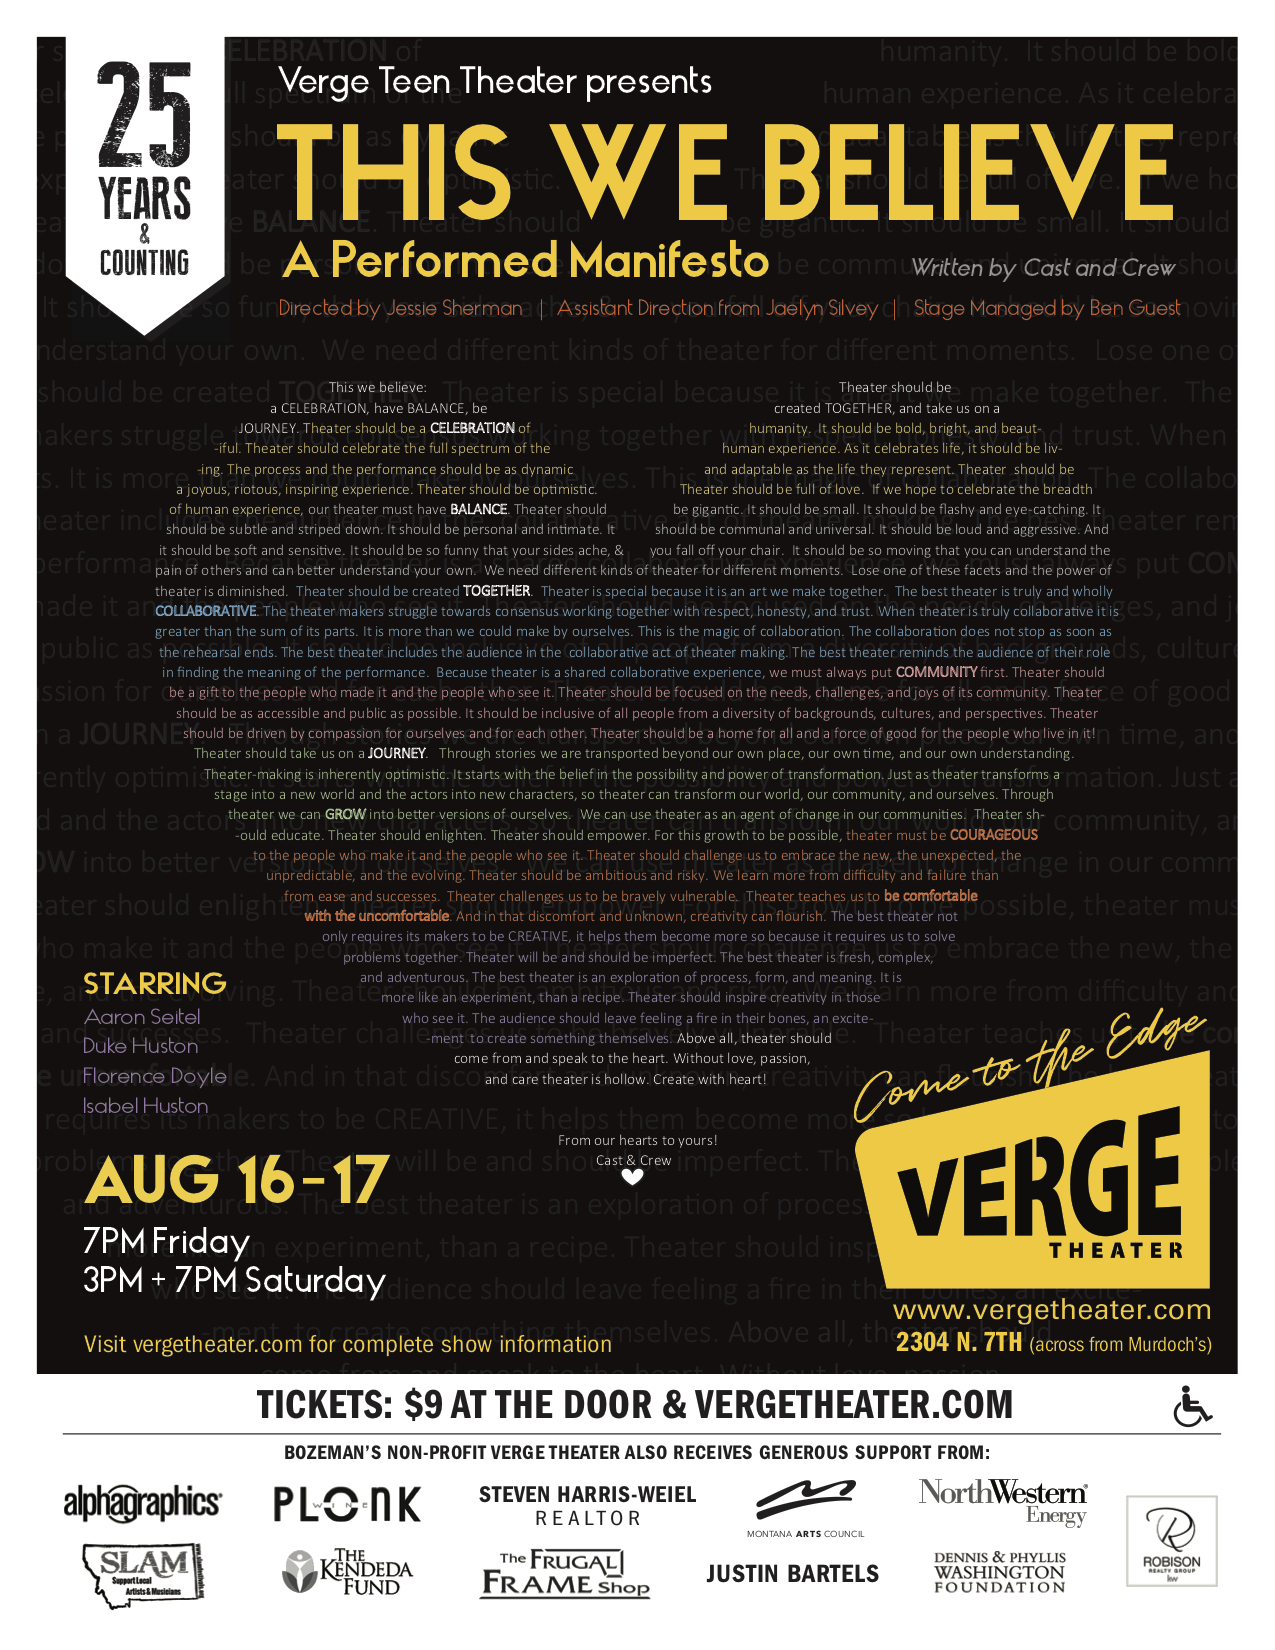 This We Believe Poster 2 8.5 x 11.jpg